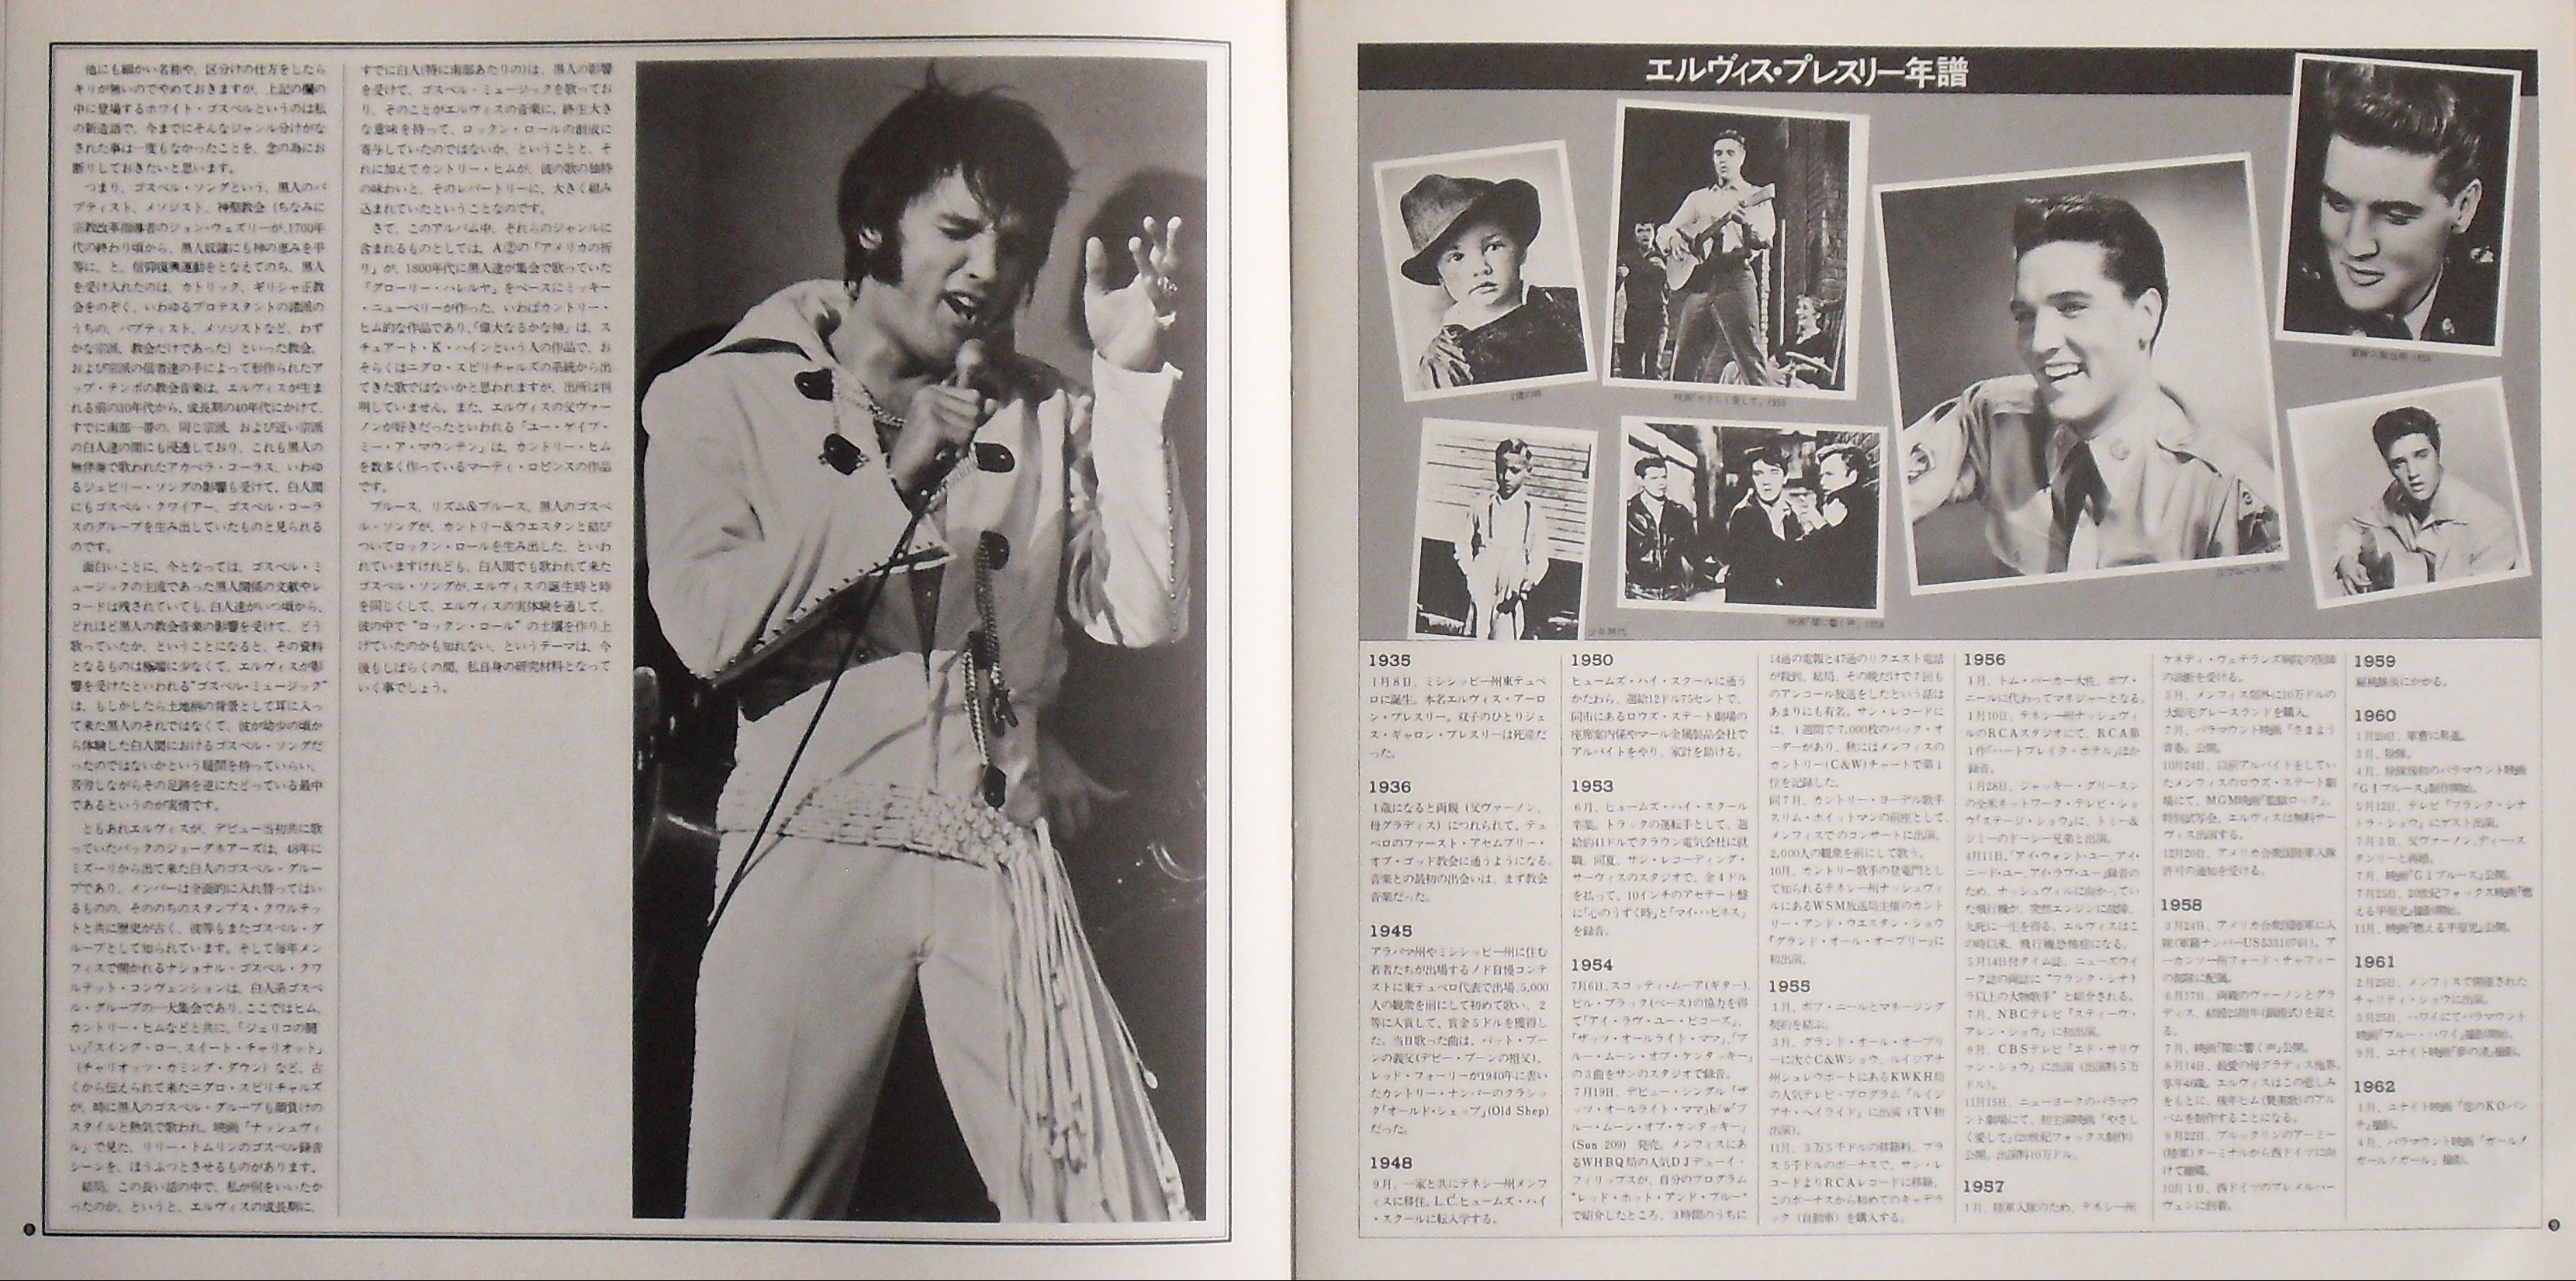 ELVIS BY REQUEST OF JAPANESE FANS 8_9kcyah